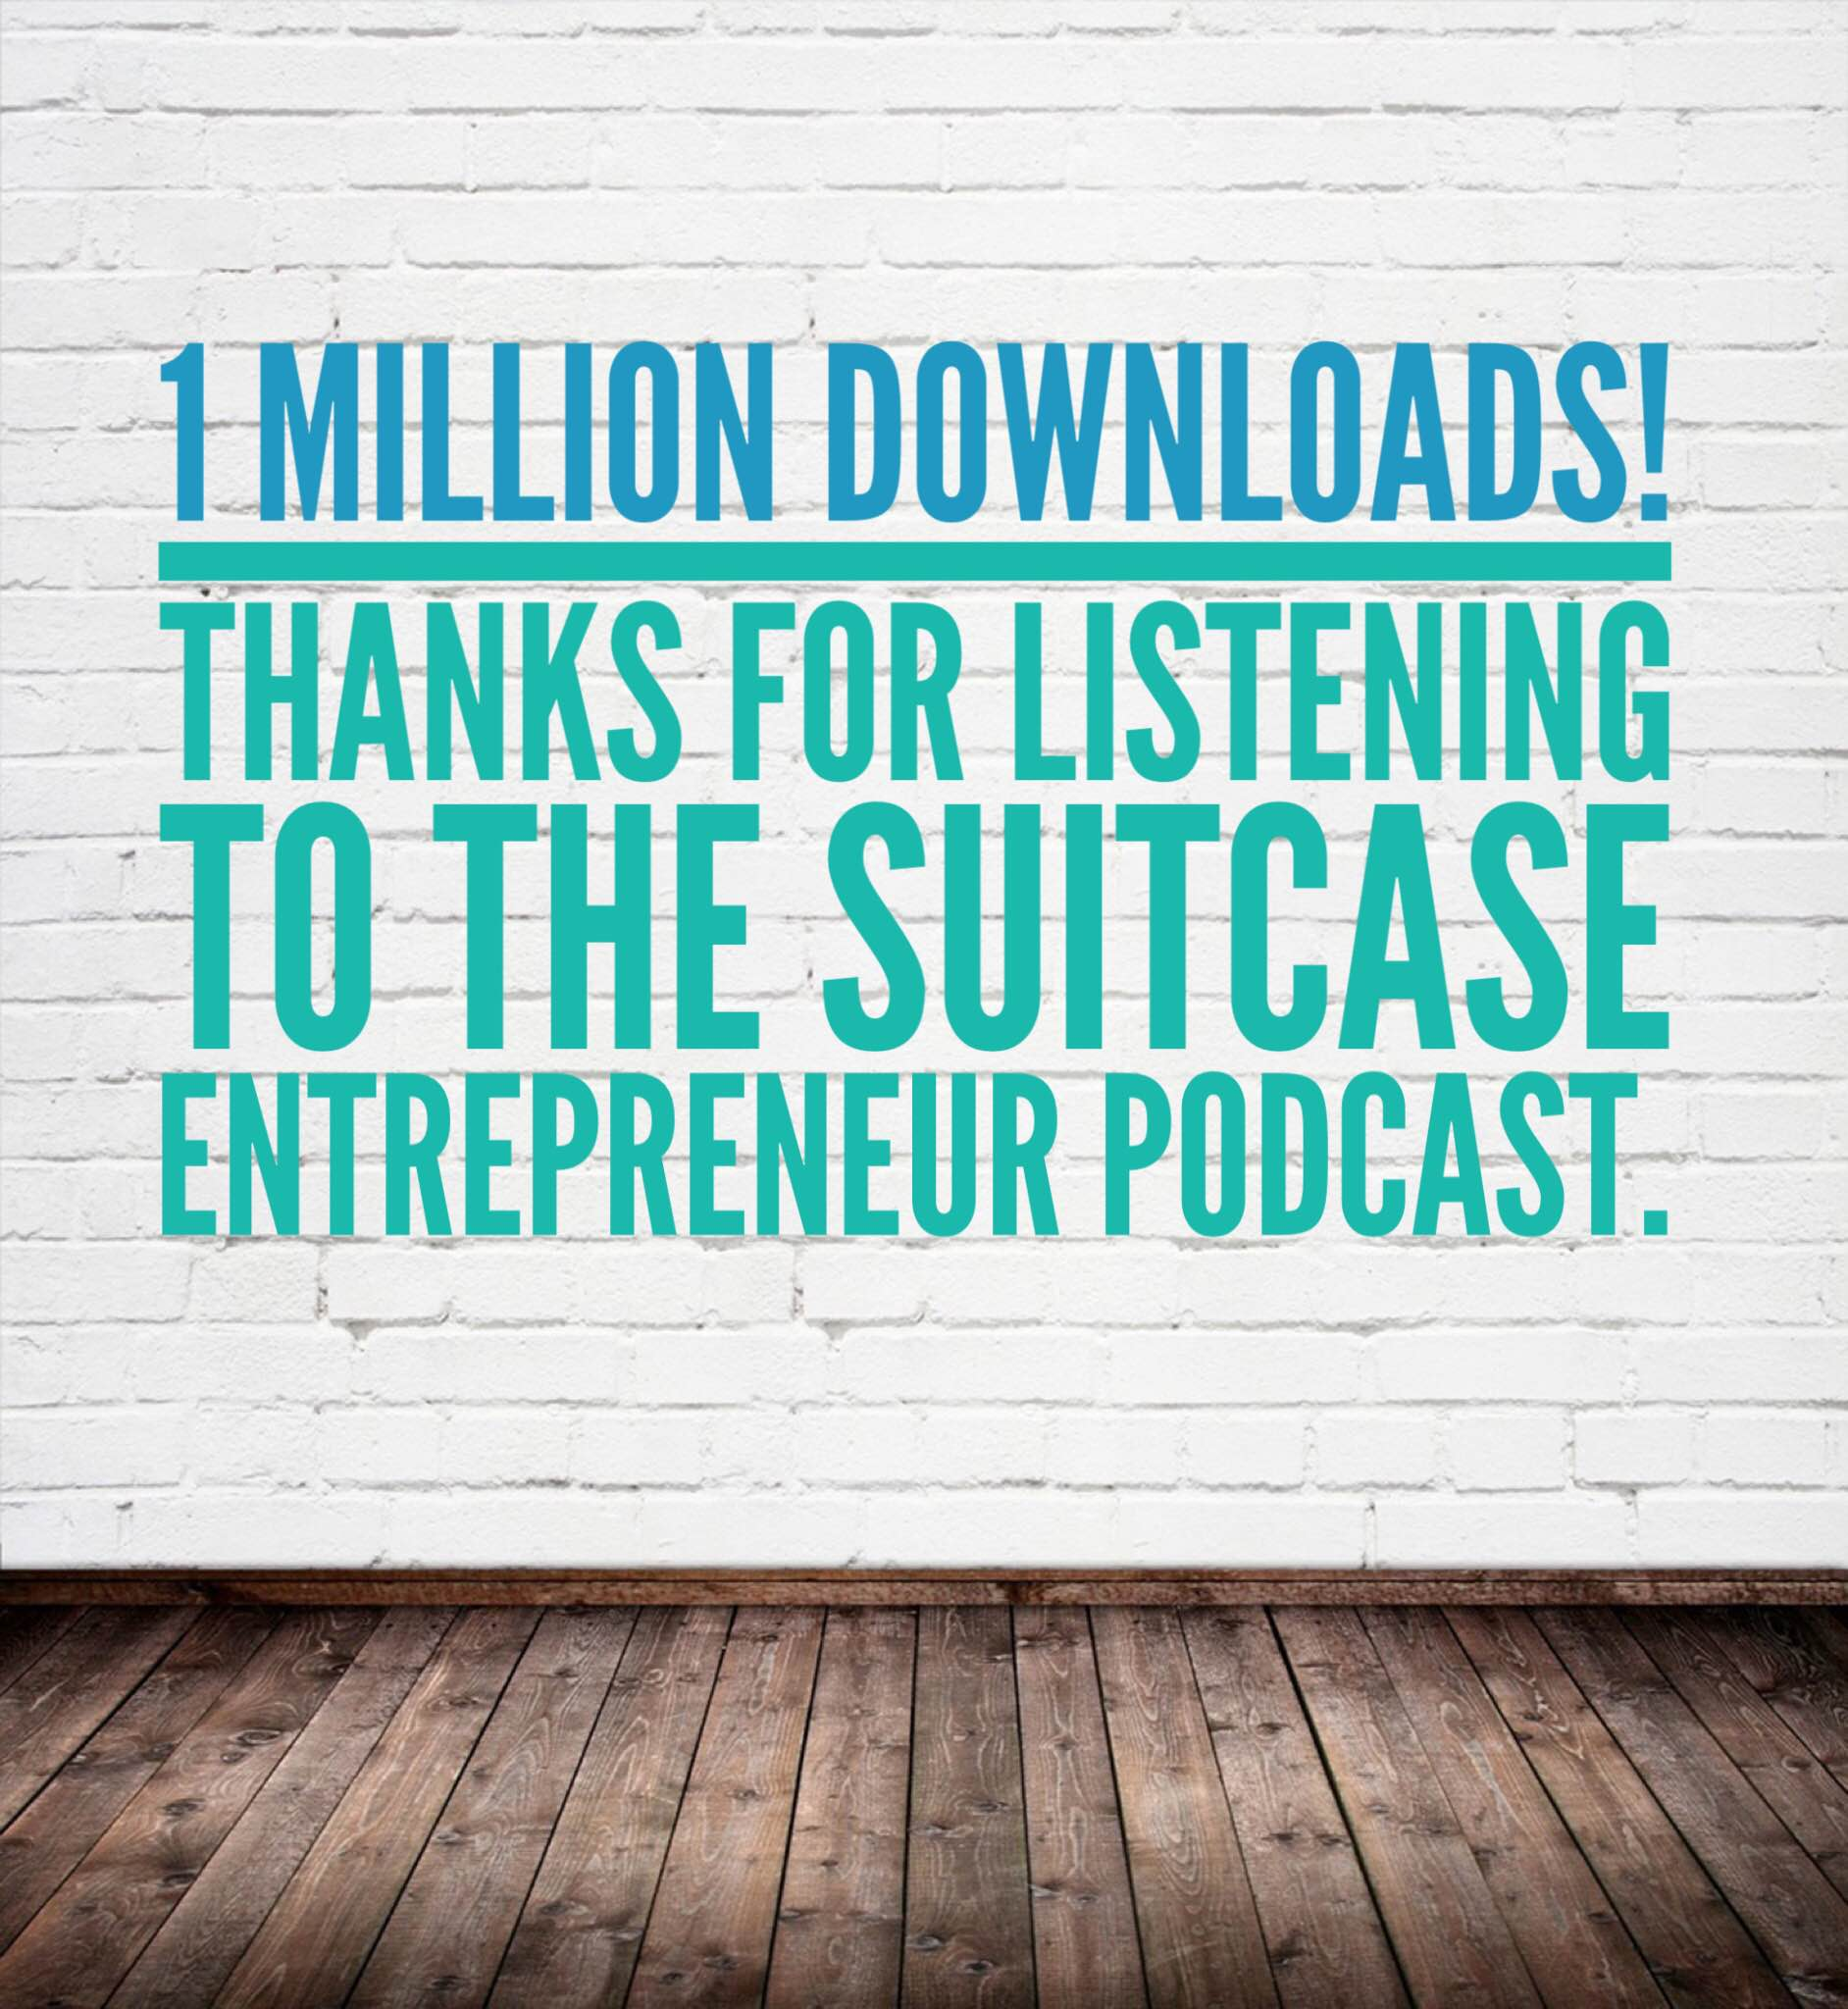 Suitcase Entrepreneur podcast reaches 1 million downloads